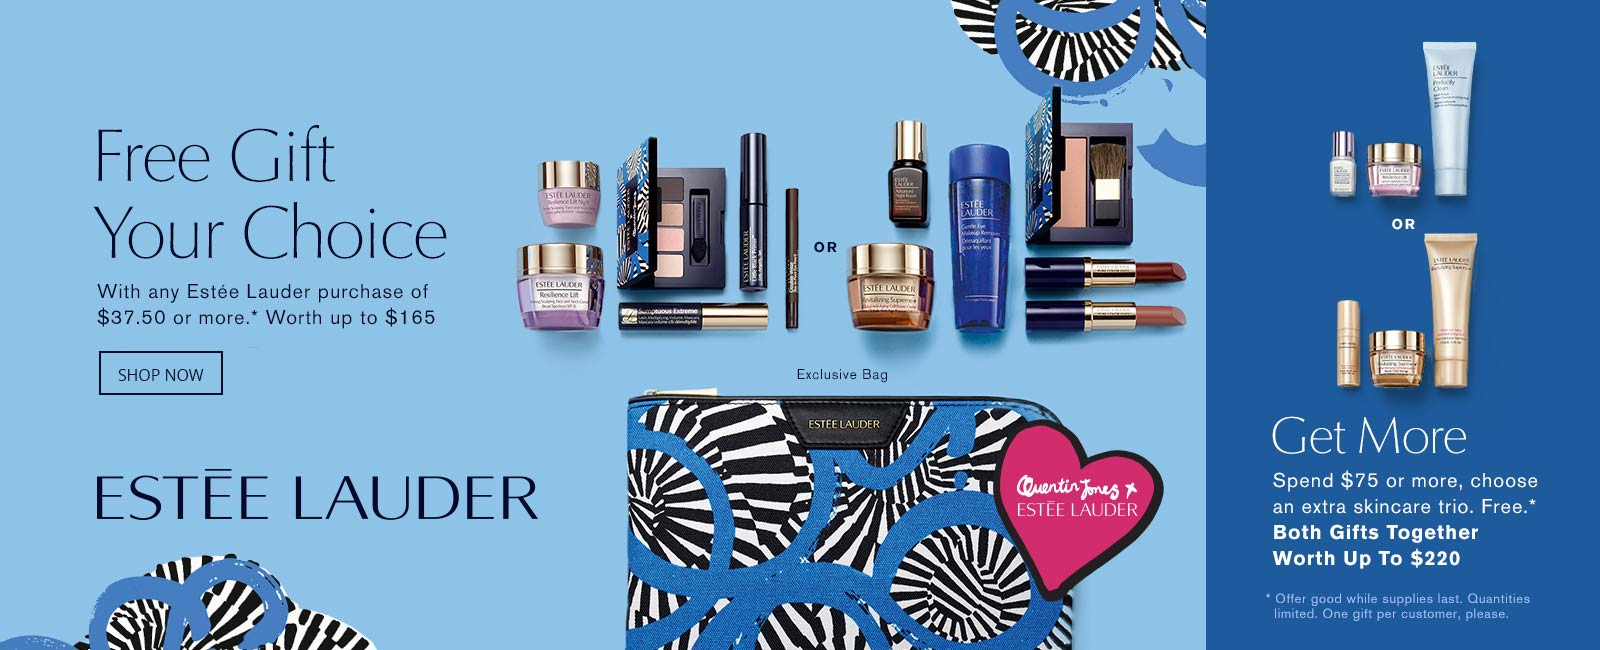 Estee Lauder gift with purchase promotional creative